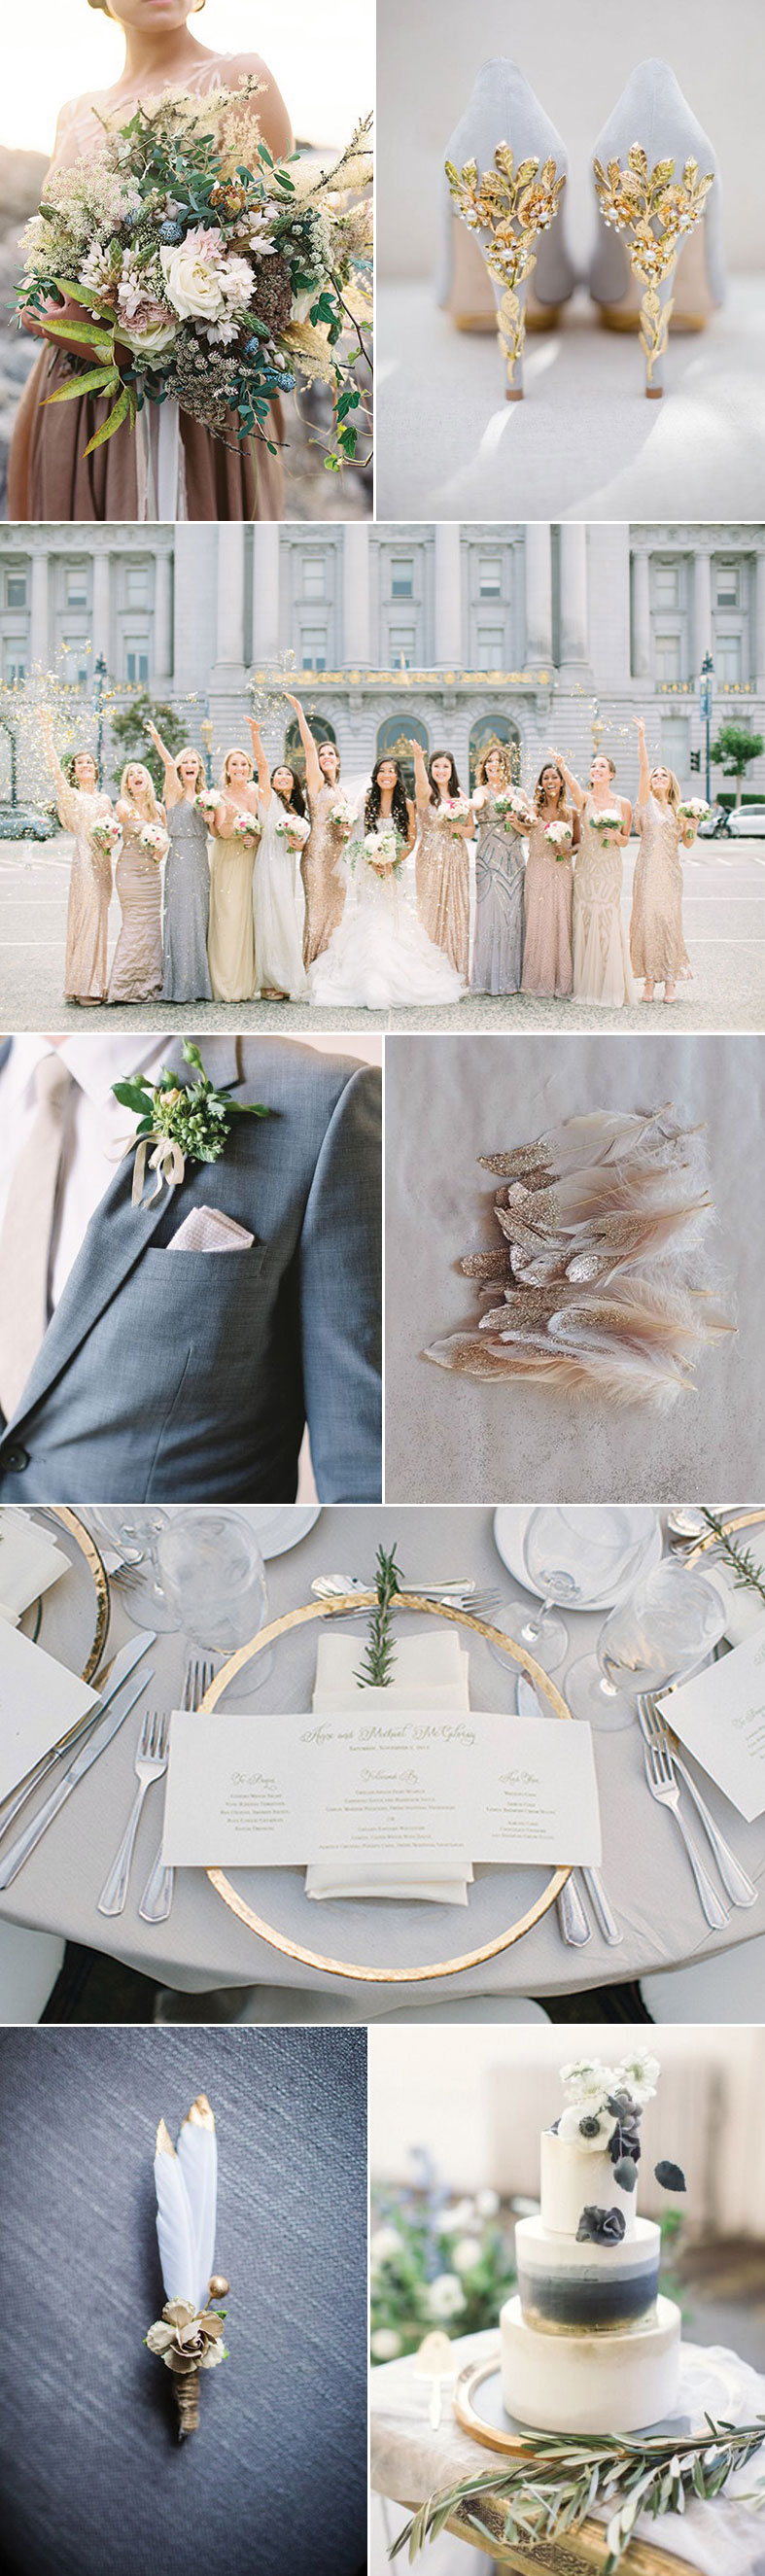 Ideas For a Glam Gray and Gold Wedding  Wedding Ties in